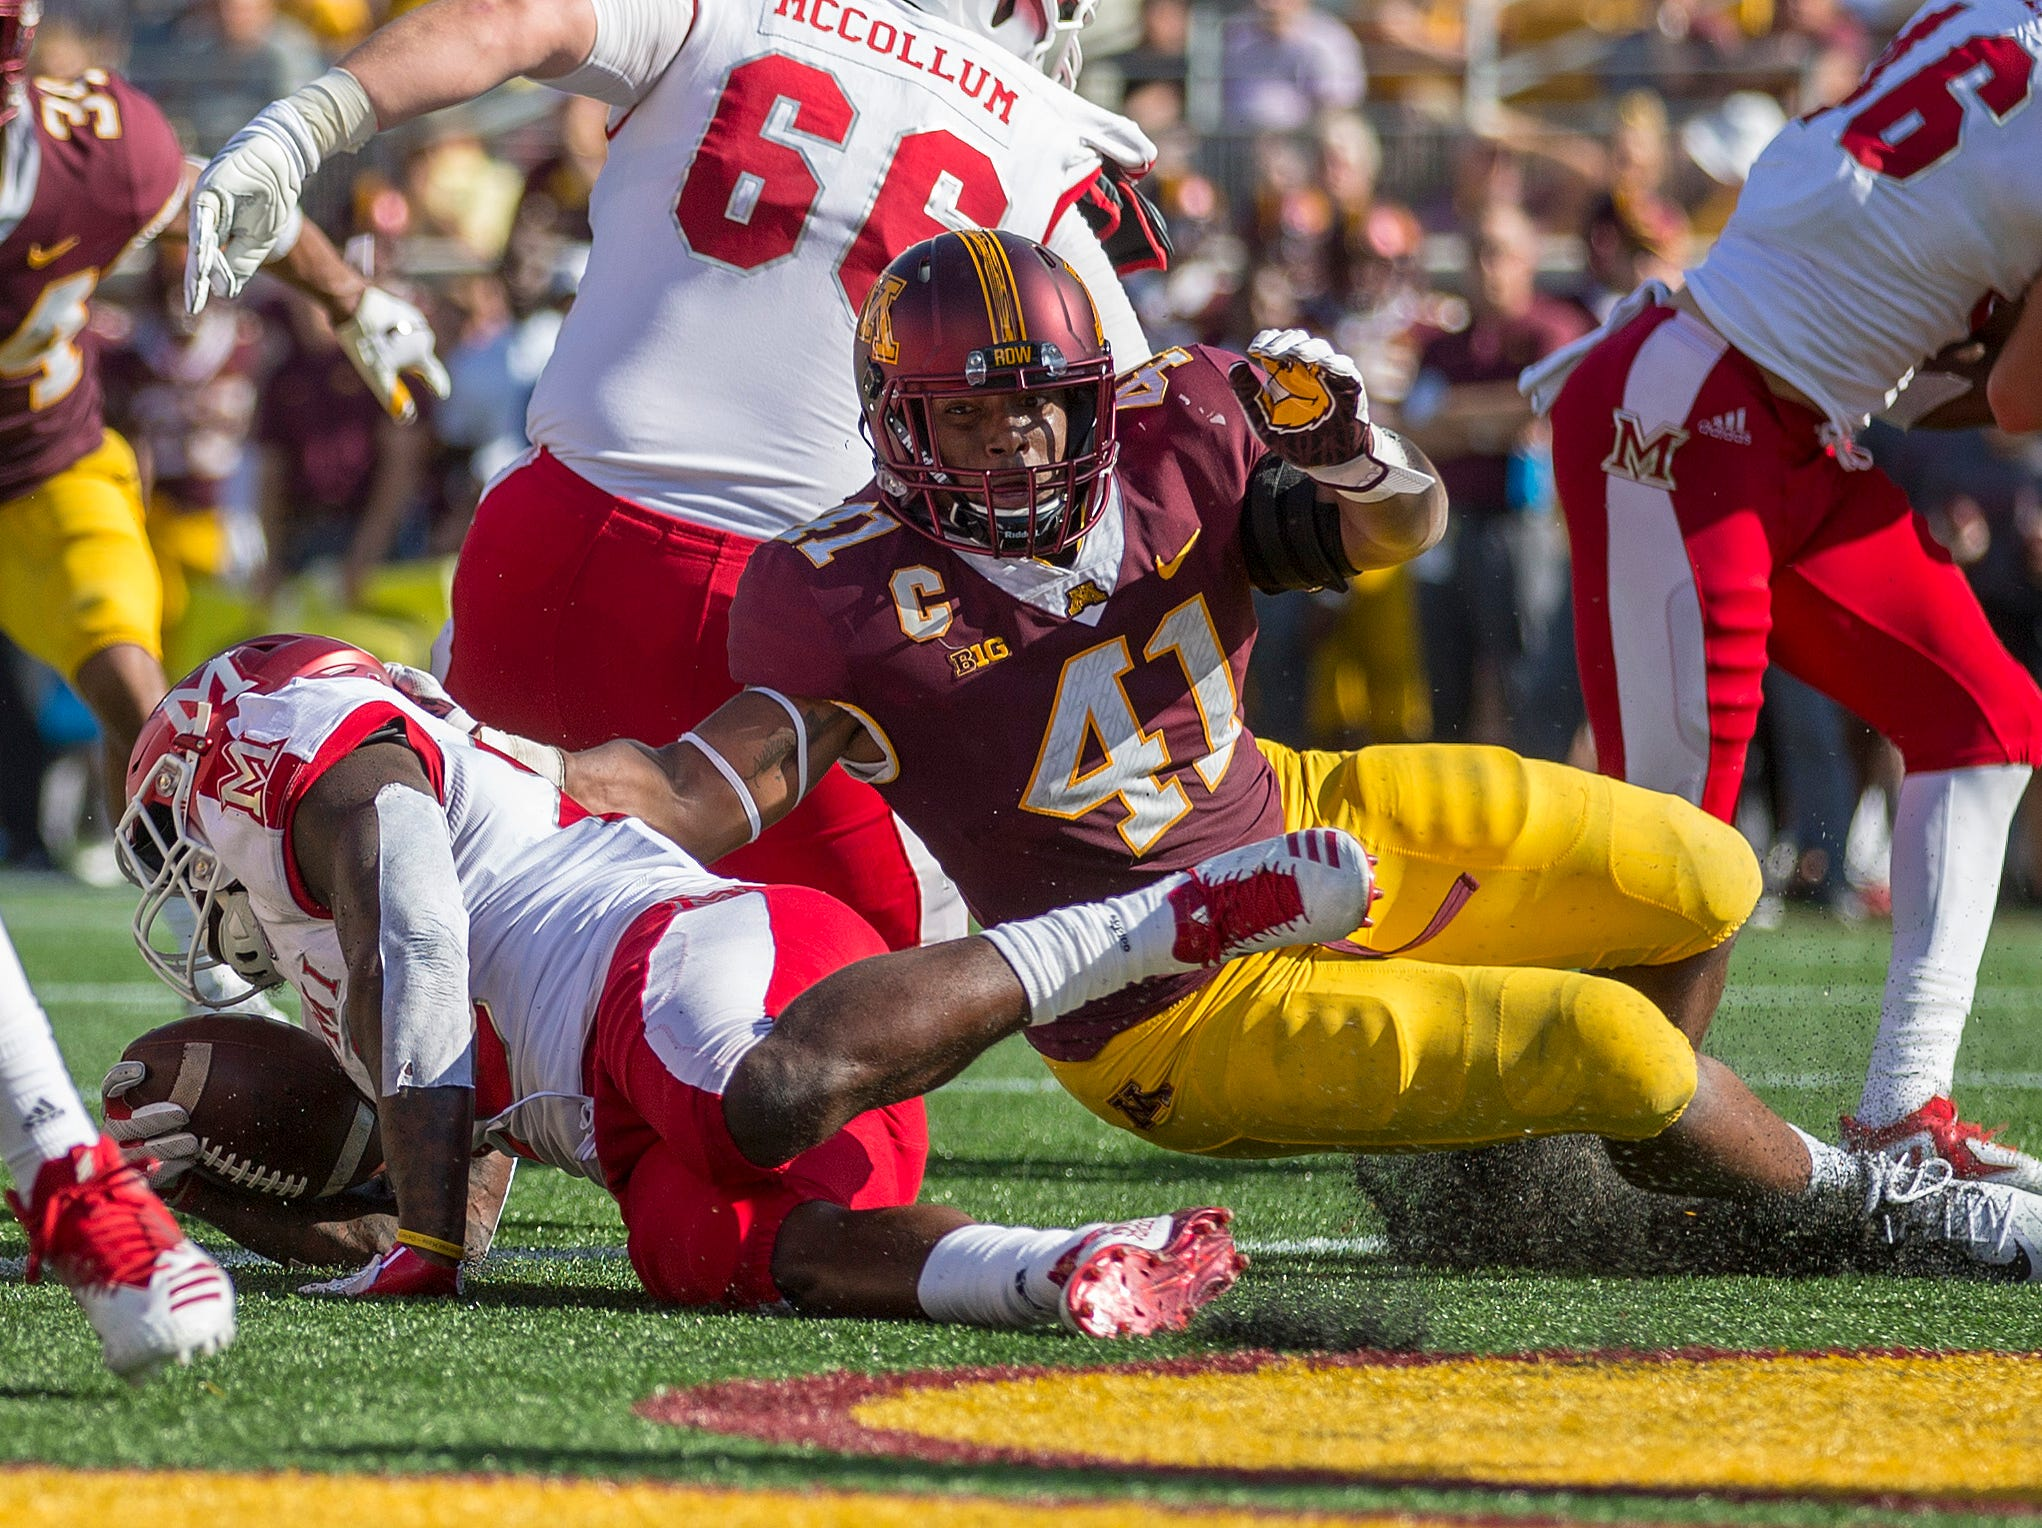 Minnesota Golden Gophers linebacker Thomas Barber (41) tackles Miami (Oh) Redhawks running back Davion Johnson (23) for a safety in the first half at TCF Bank Stadium.